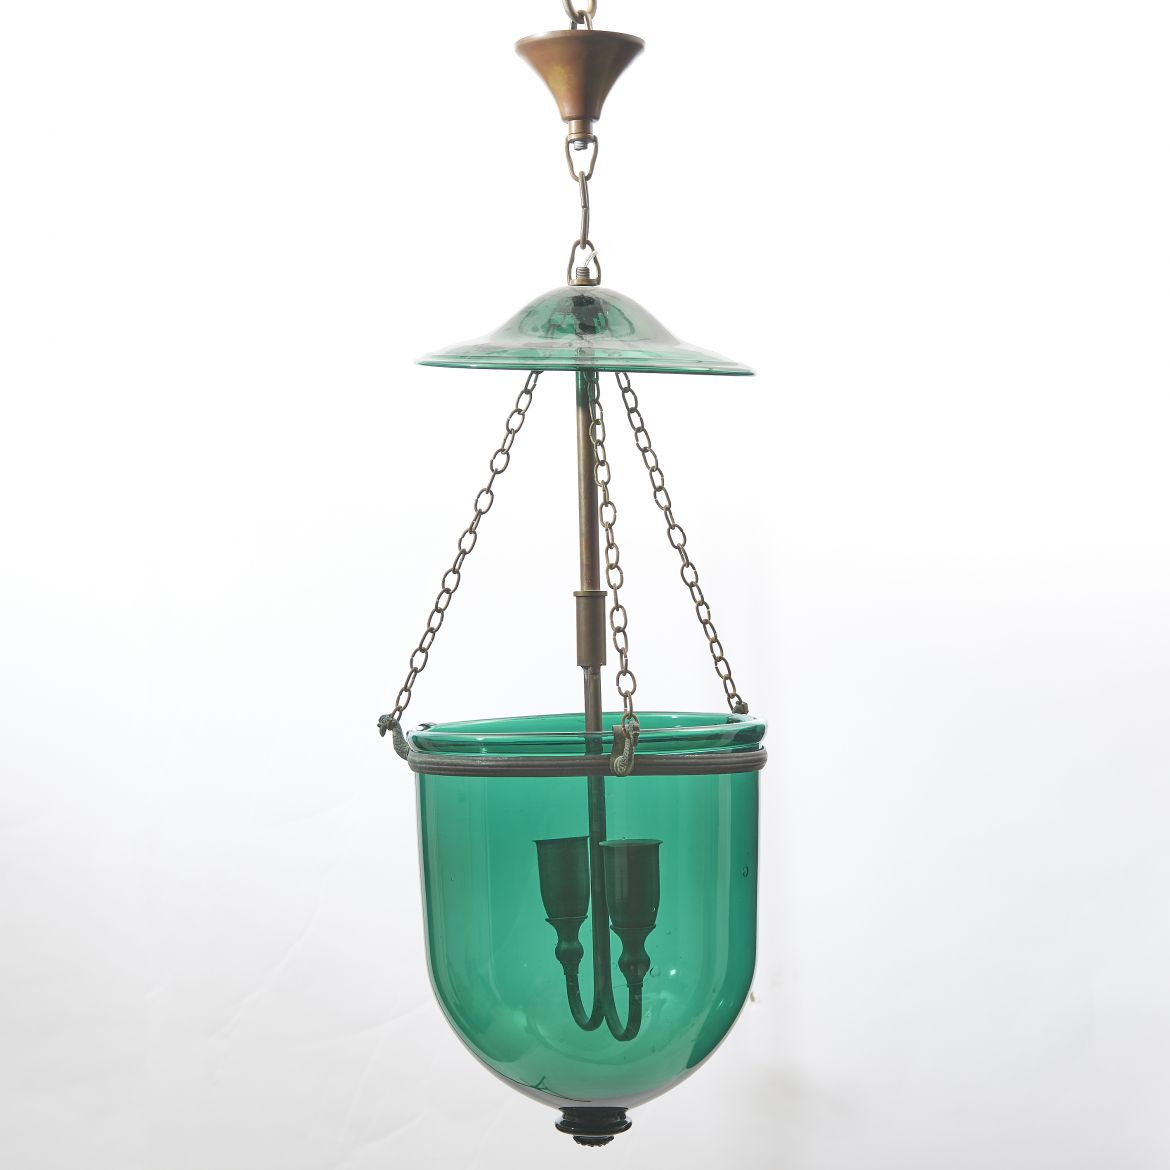 Green glass Mosque Lantern